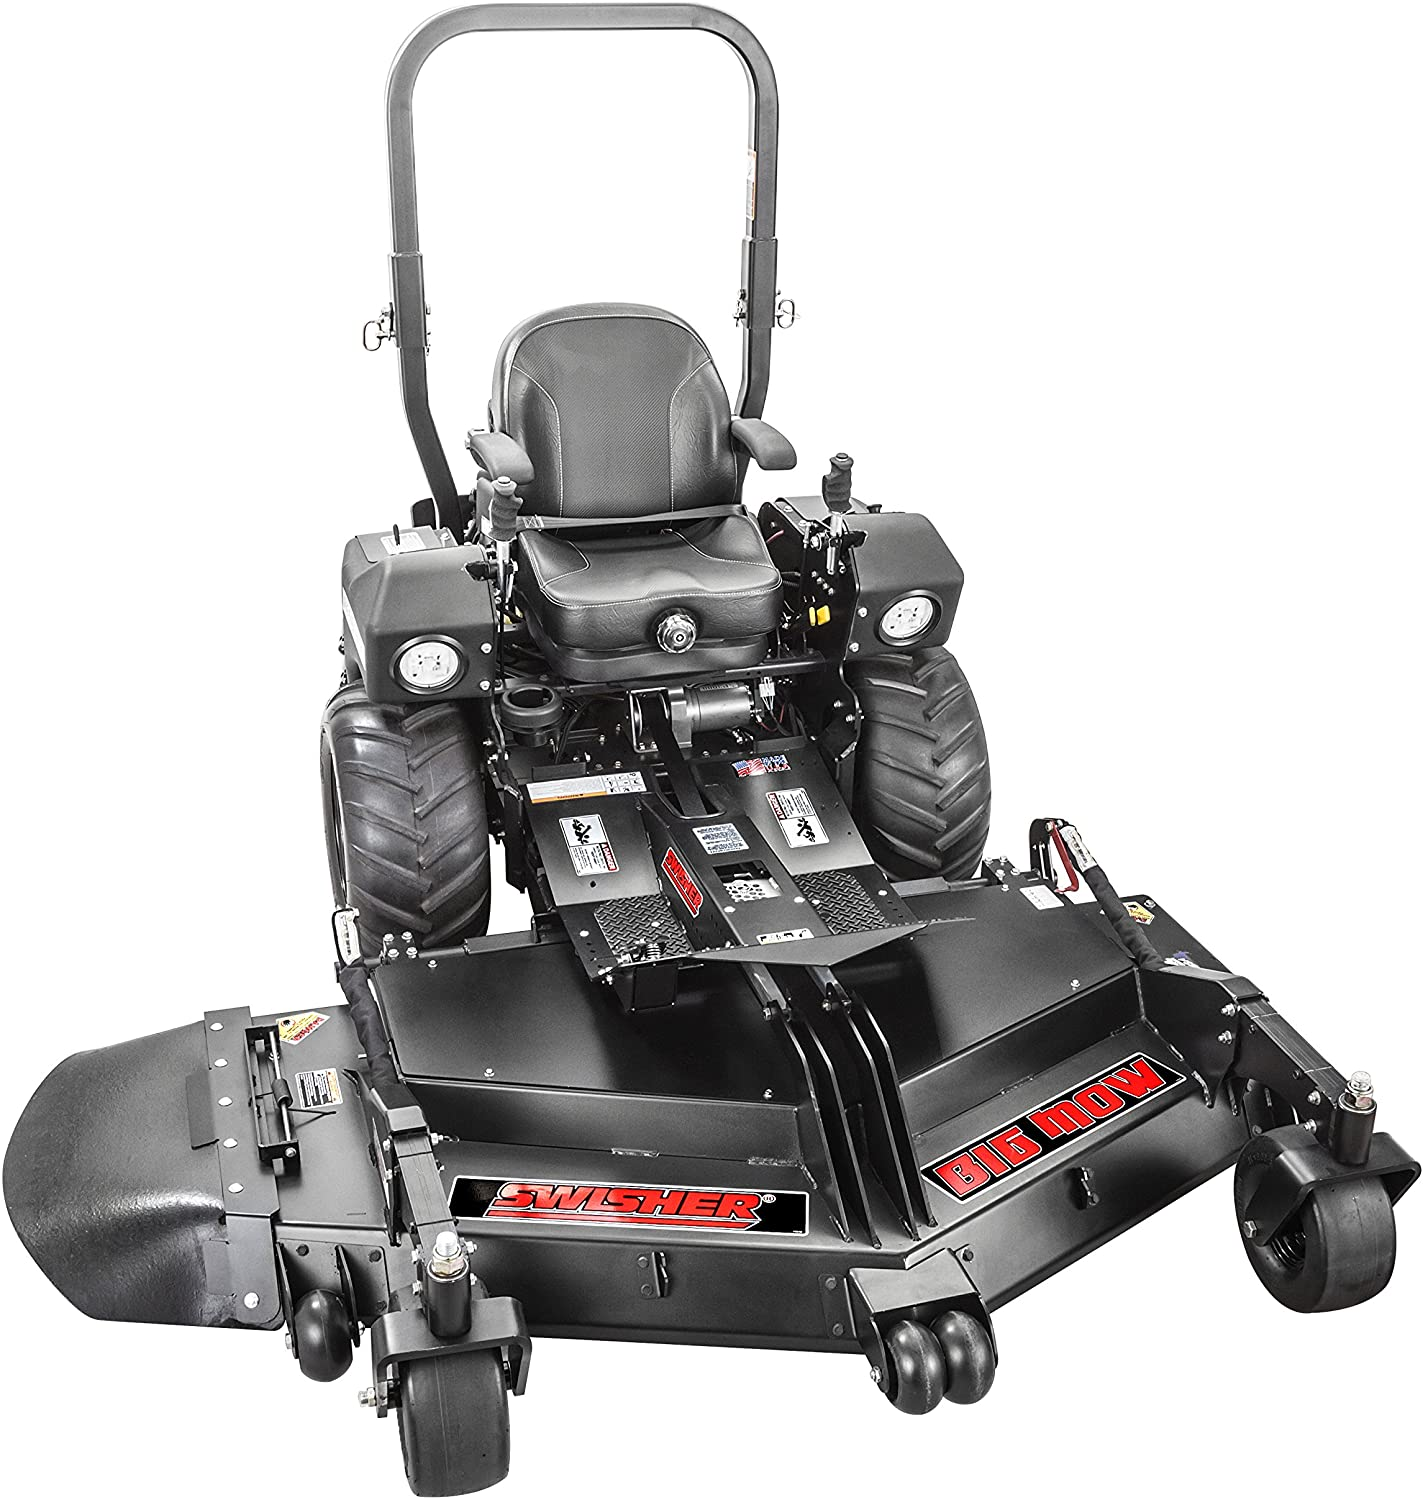 Best zero turn mower for 10 acres: The Definitive Guide